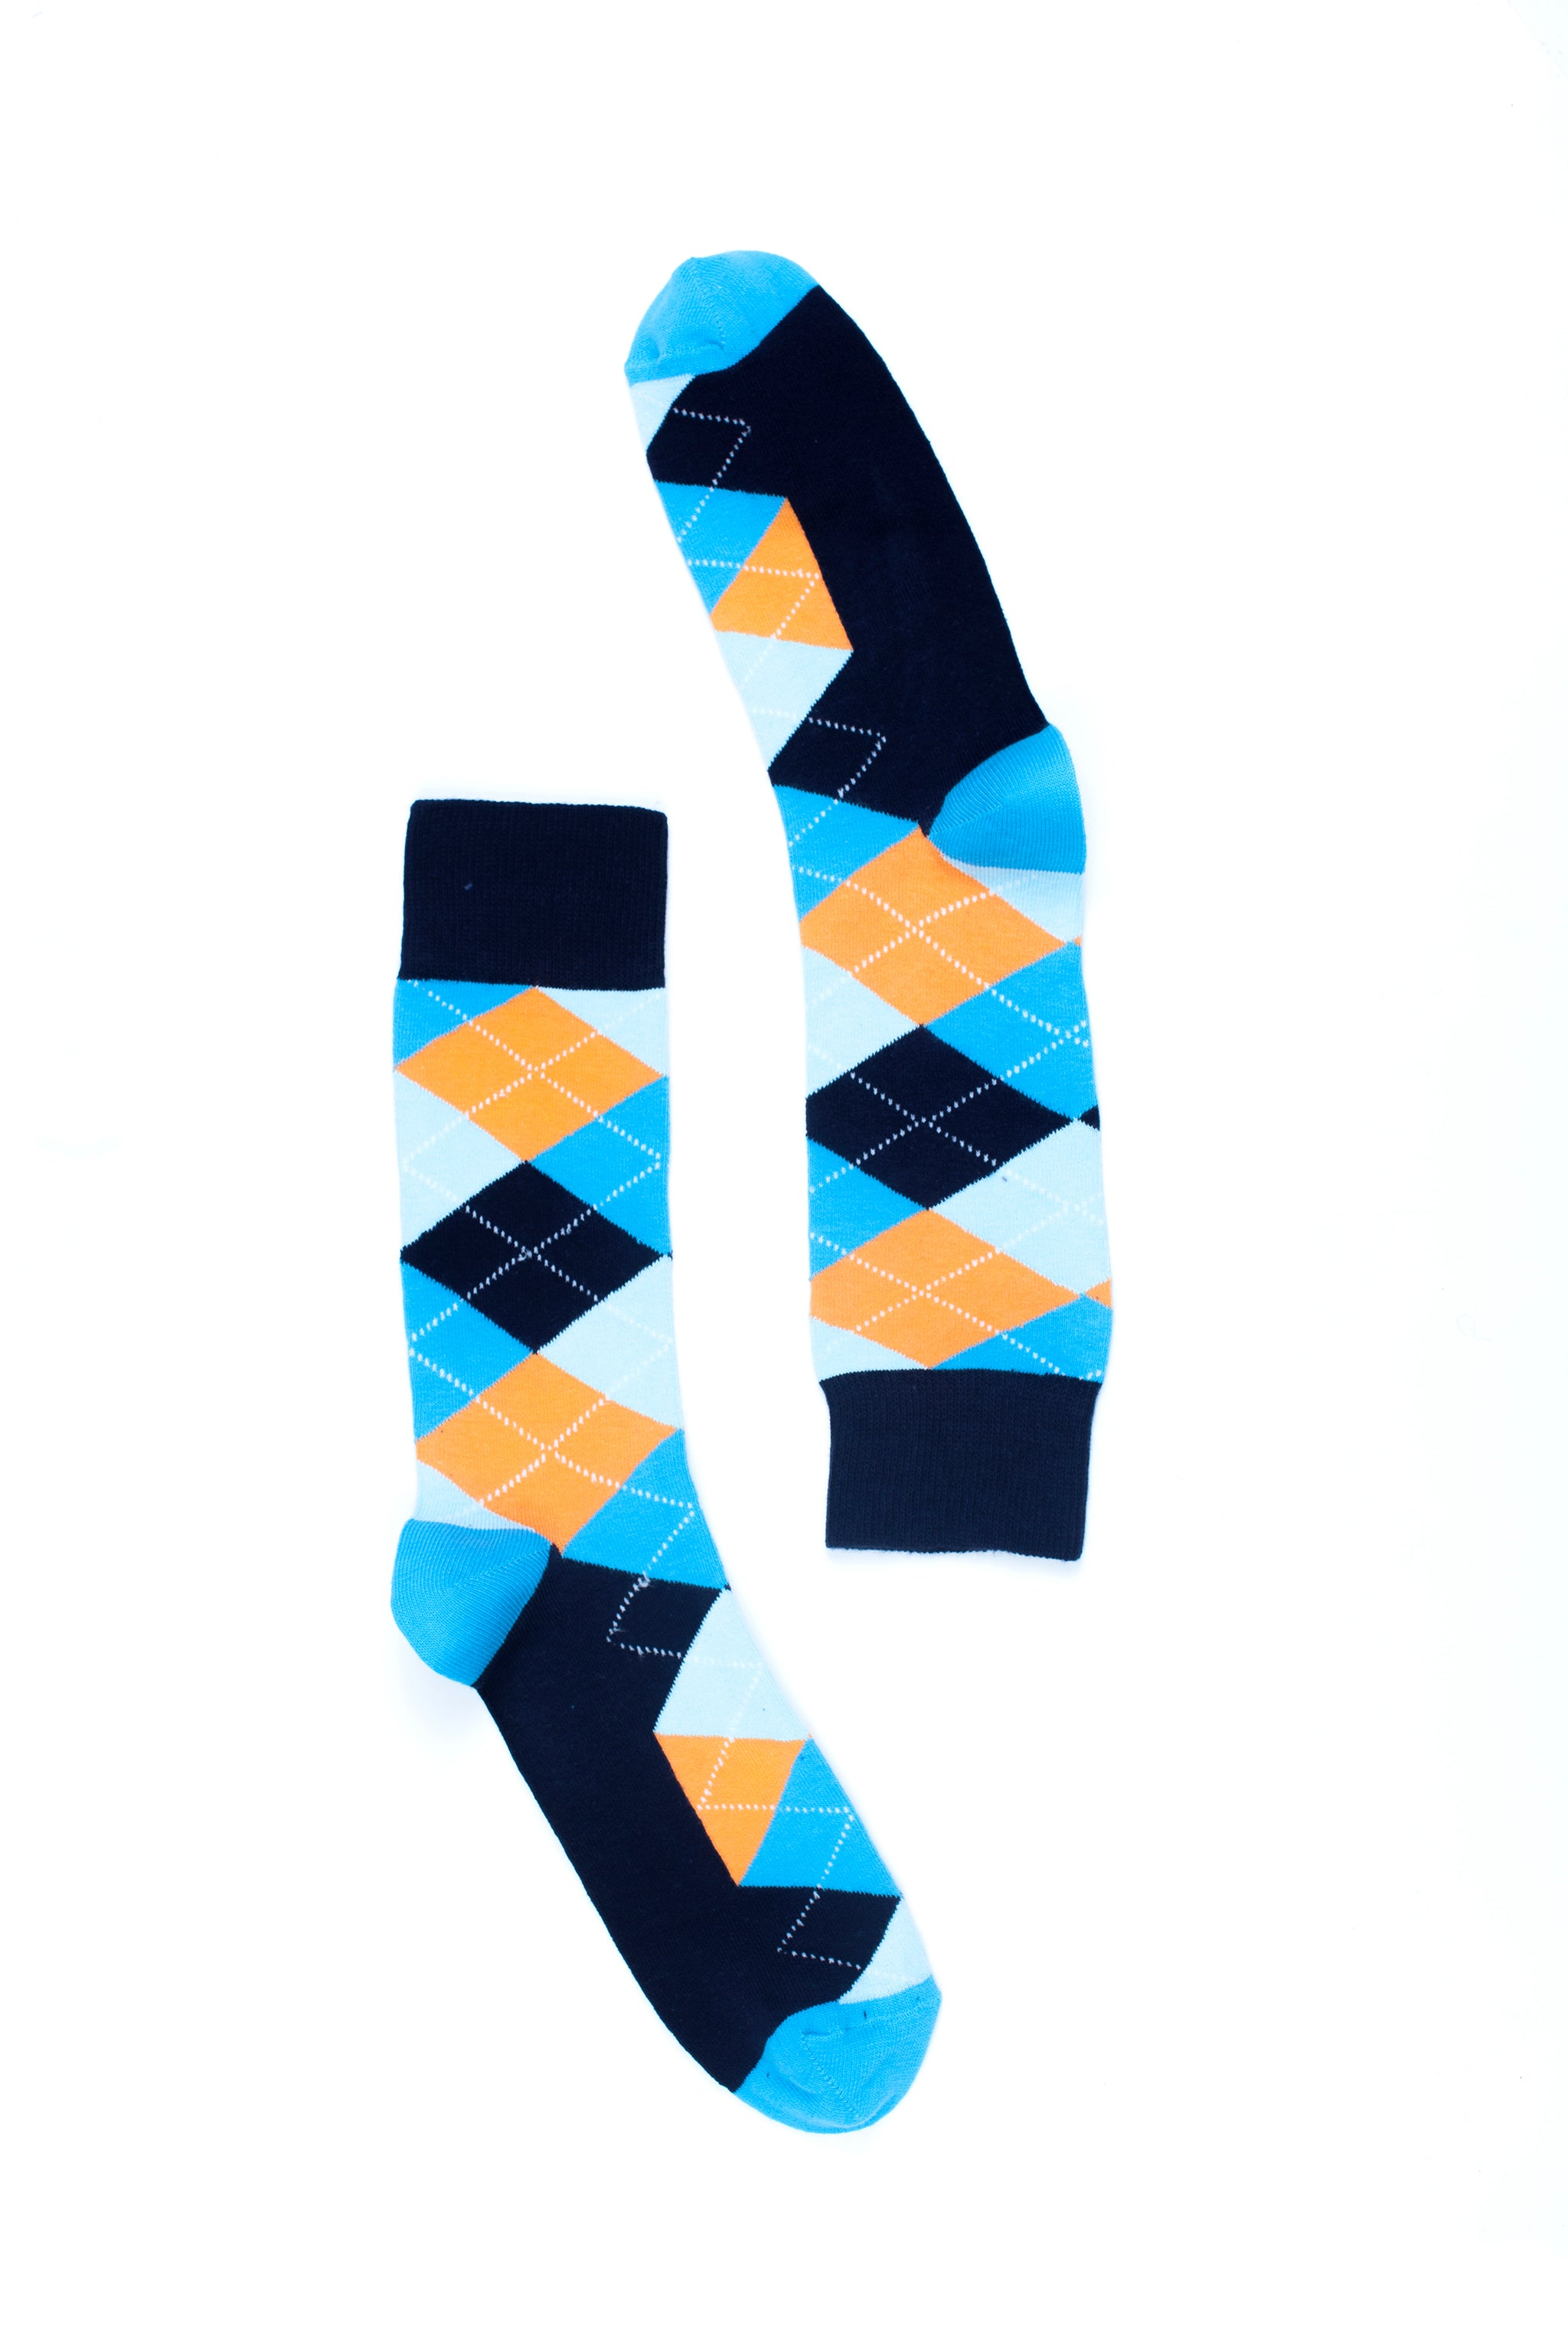 Men's Vibrant Sky Argyle Socks